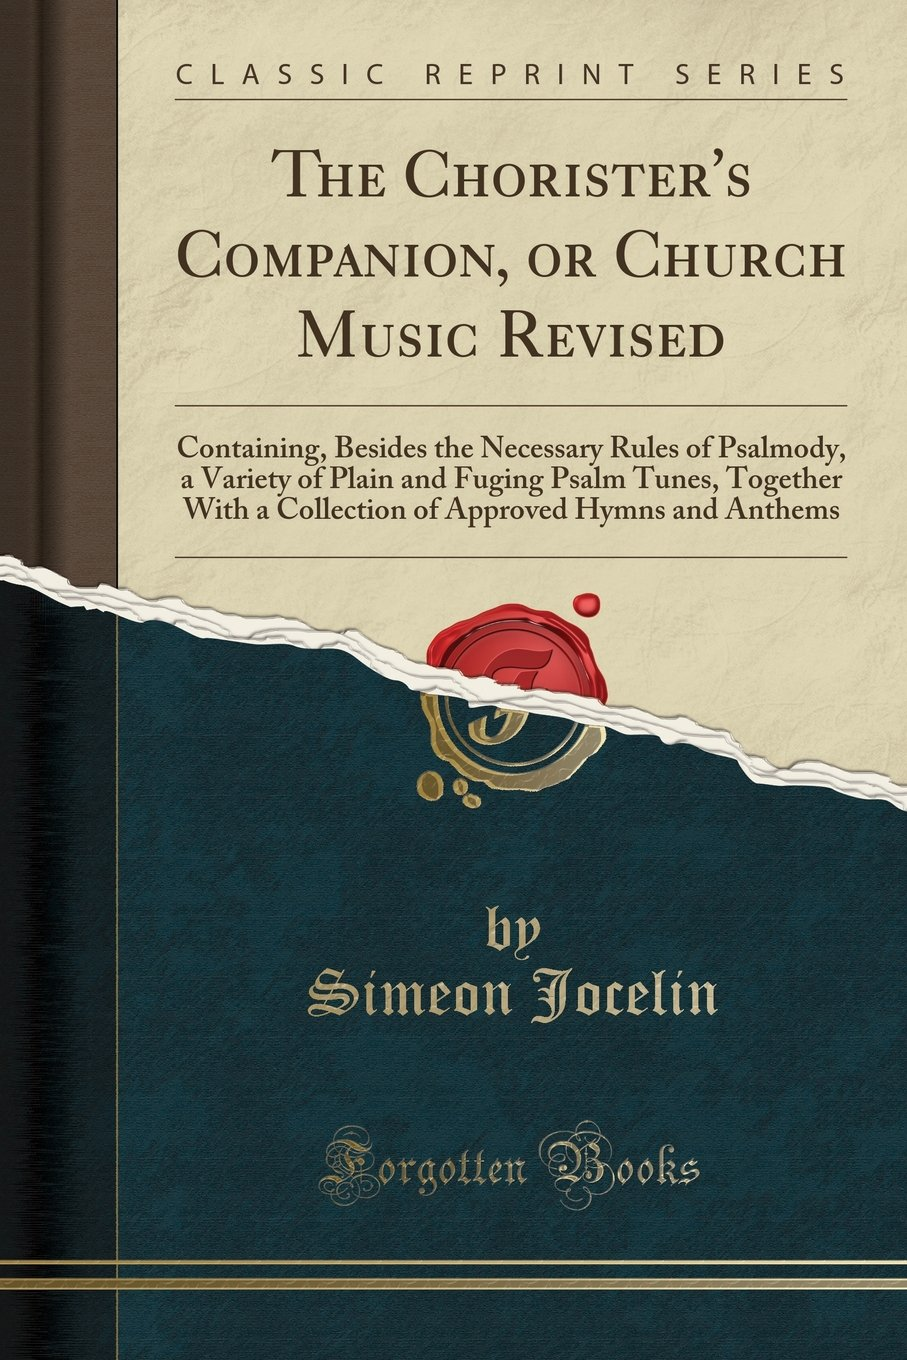 The Chorister's Companion, or Church Music Revised: Containing, Besides the Necessary Rules of Psalmody, a Variety of Plain and Fuging Psalm Tunes, ... Approved Hymns and Anthems (Classic Reprint) ebook